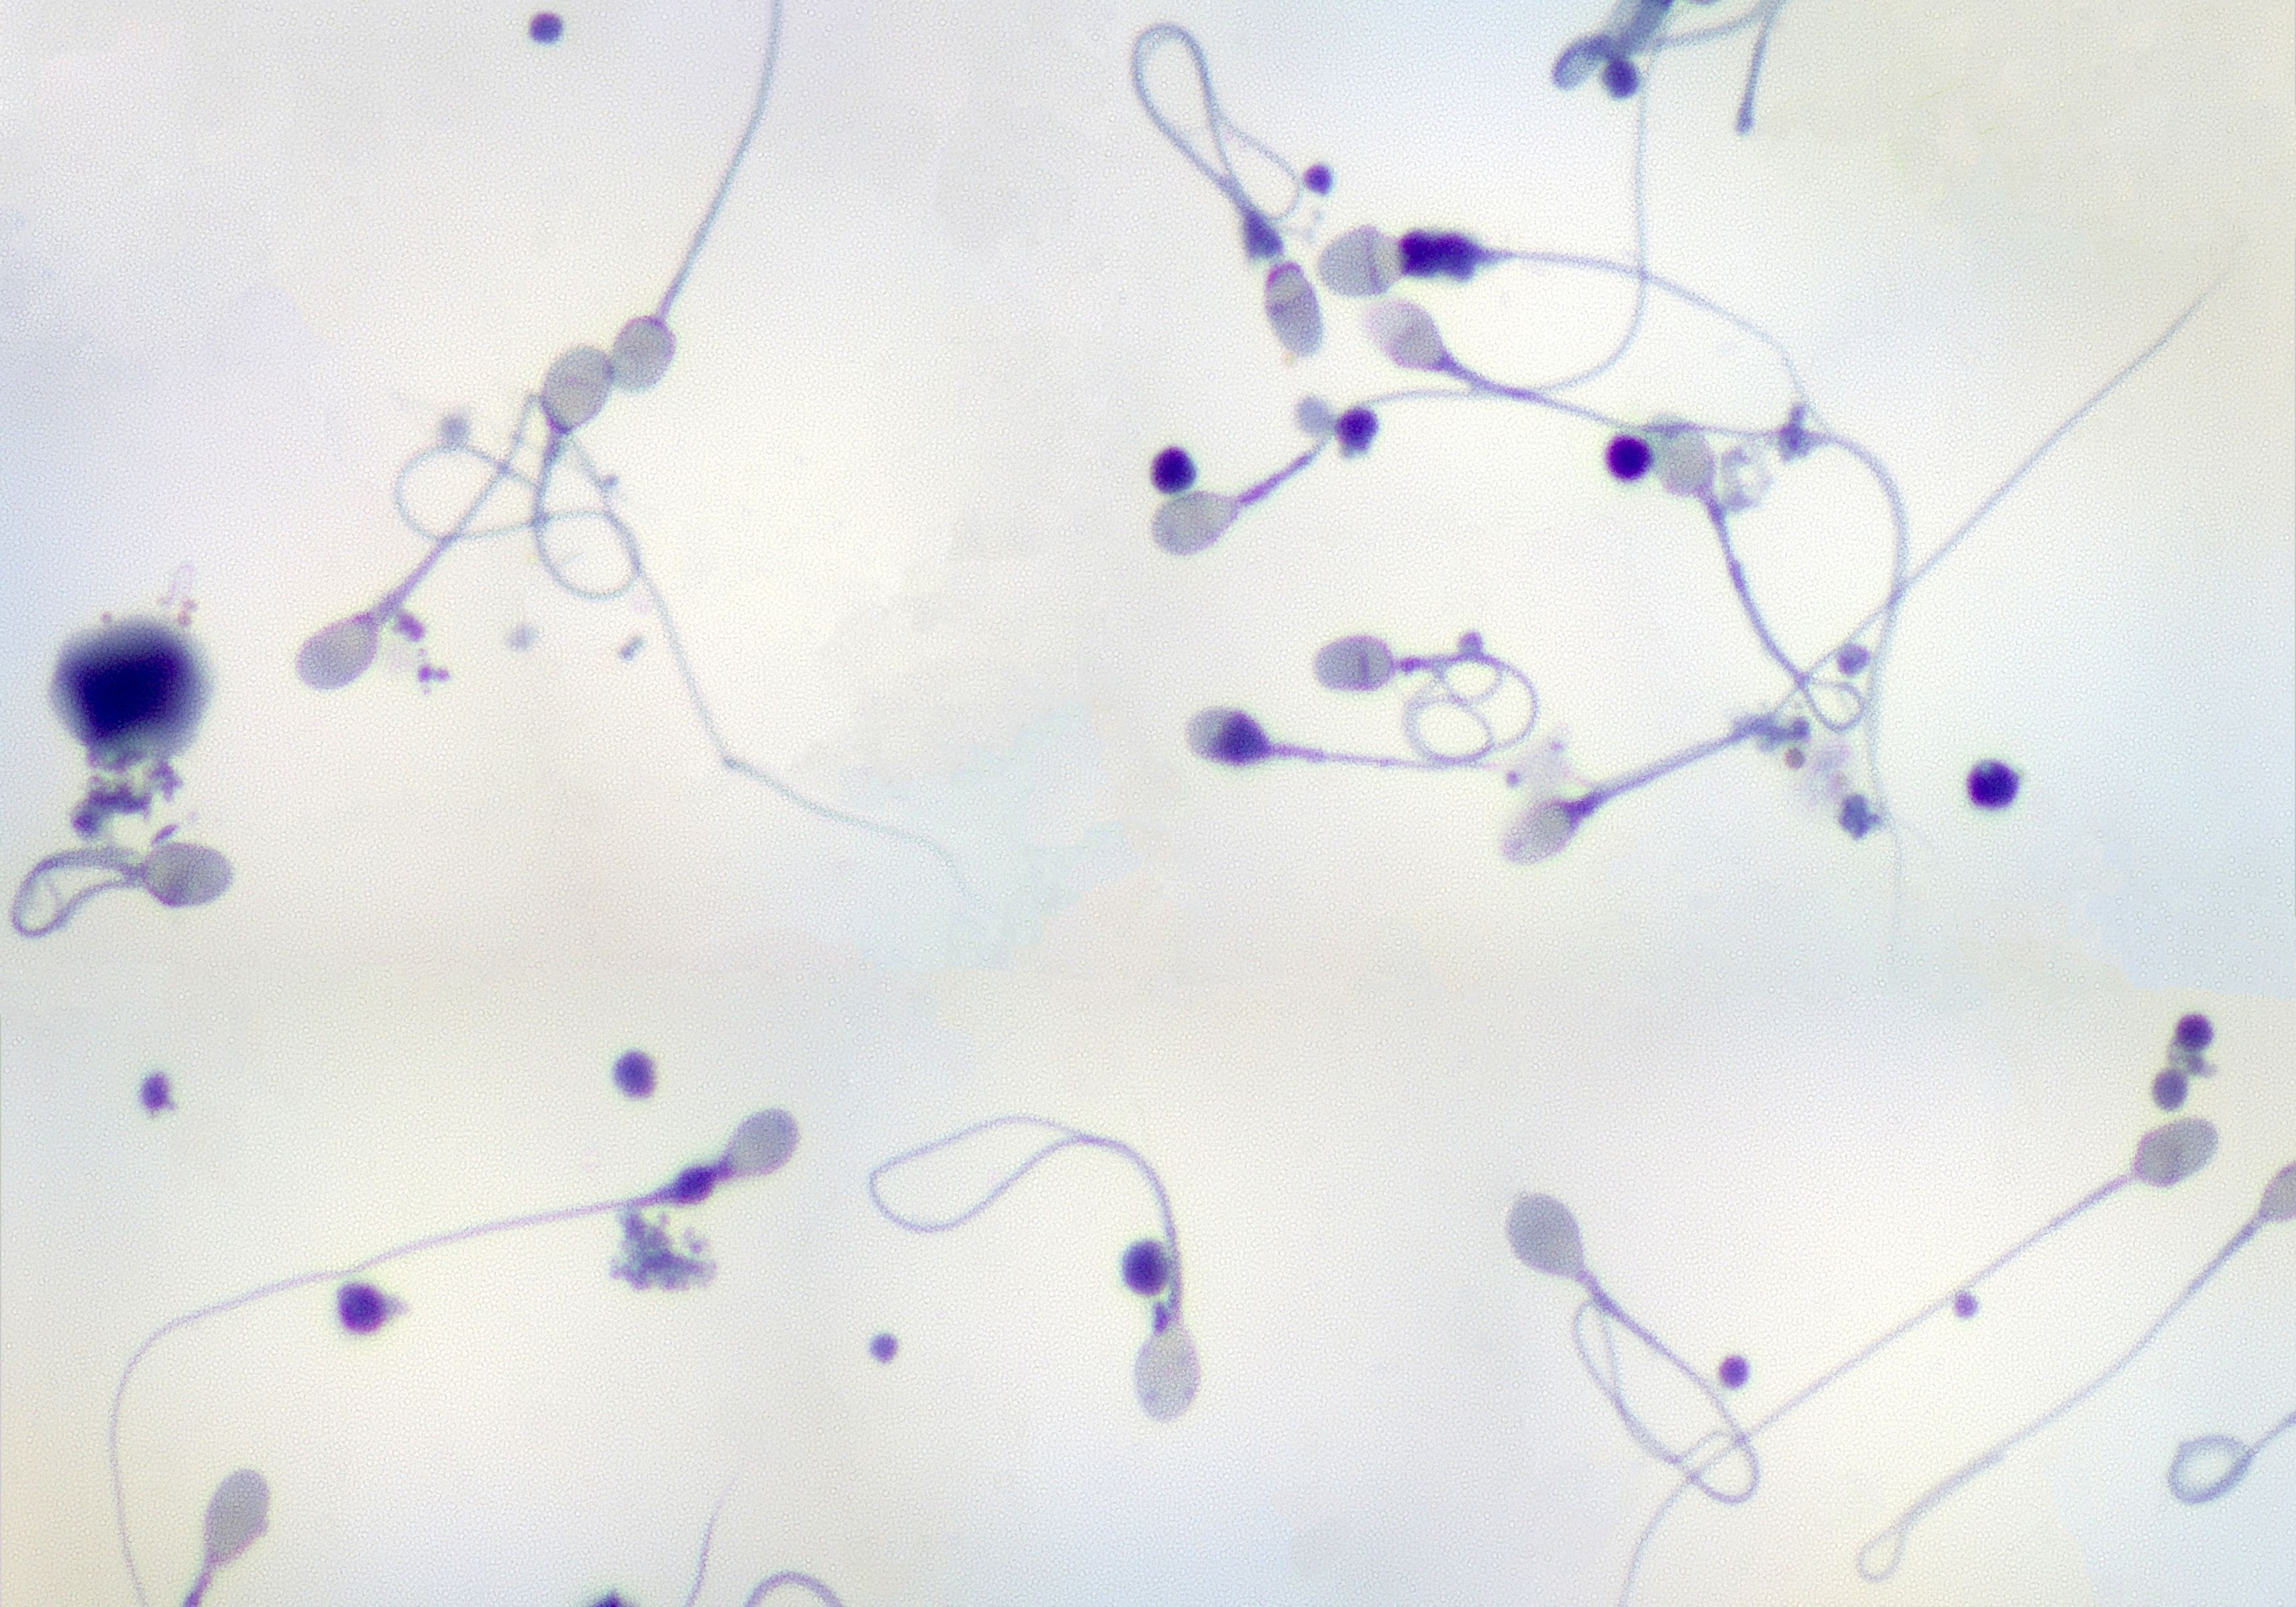 Sperm seen under a microscope